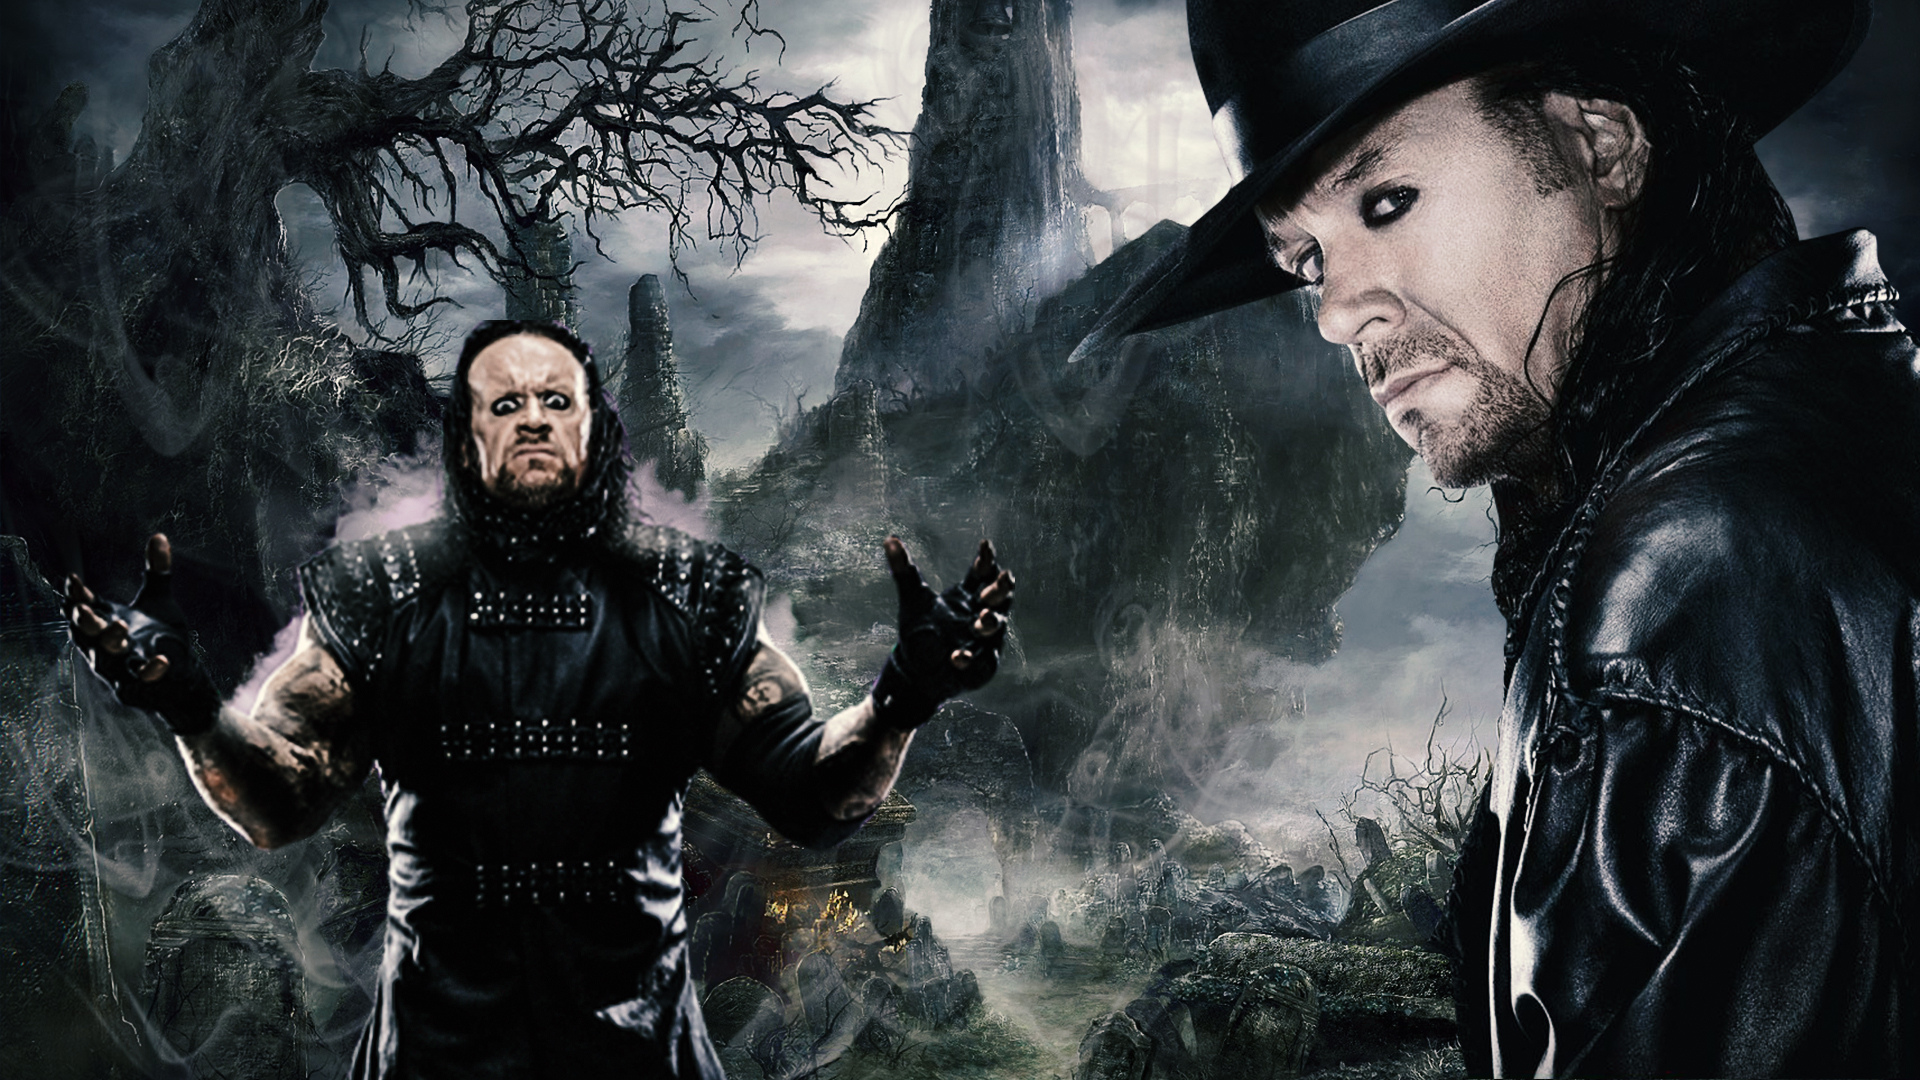 Download Fantasict Undertaker Mobile Hd Background Wallpapers Free